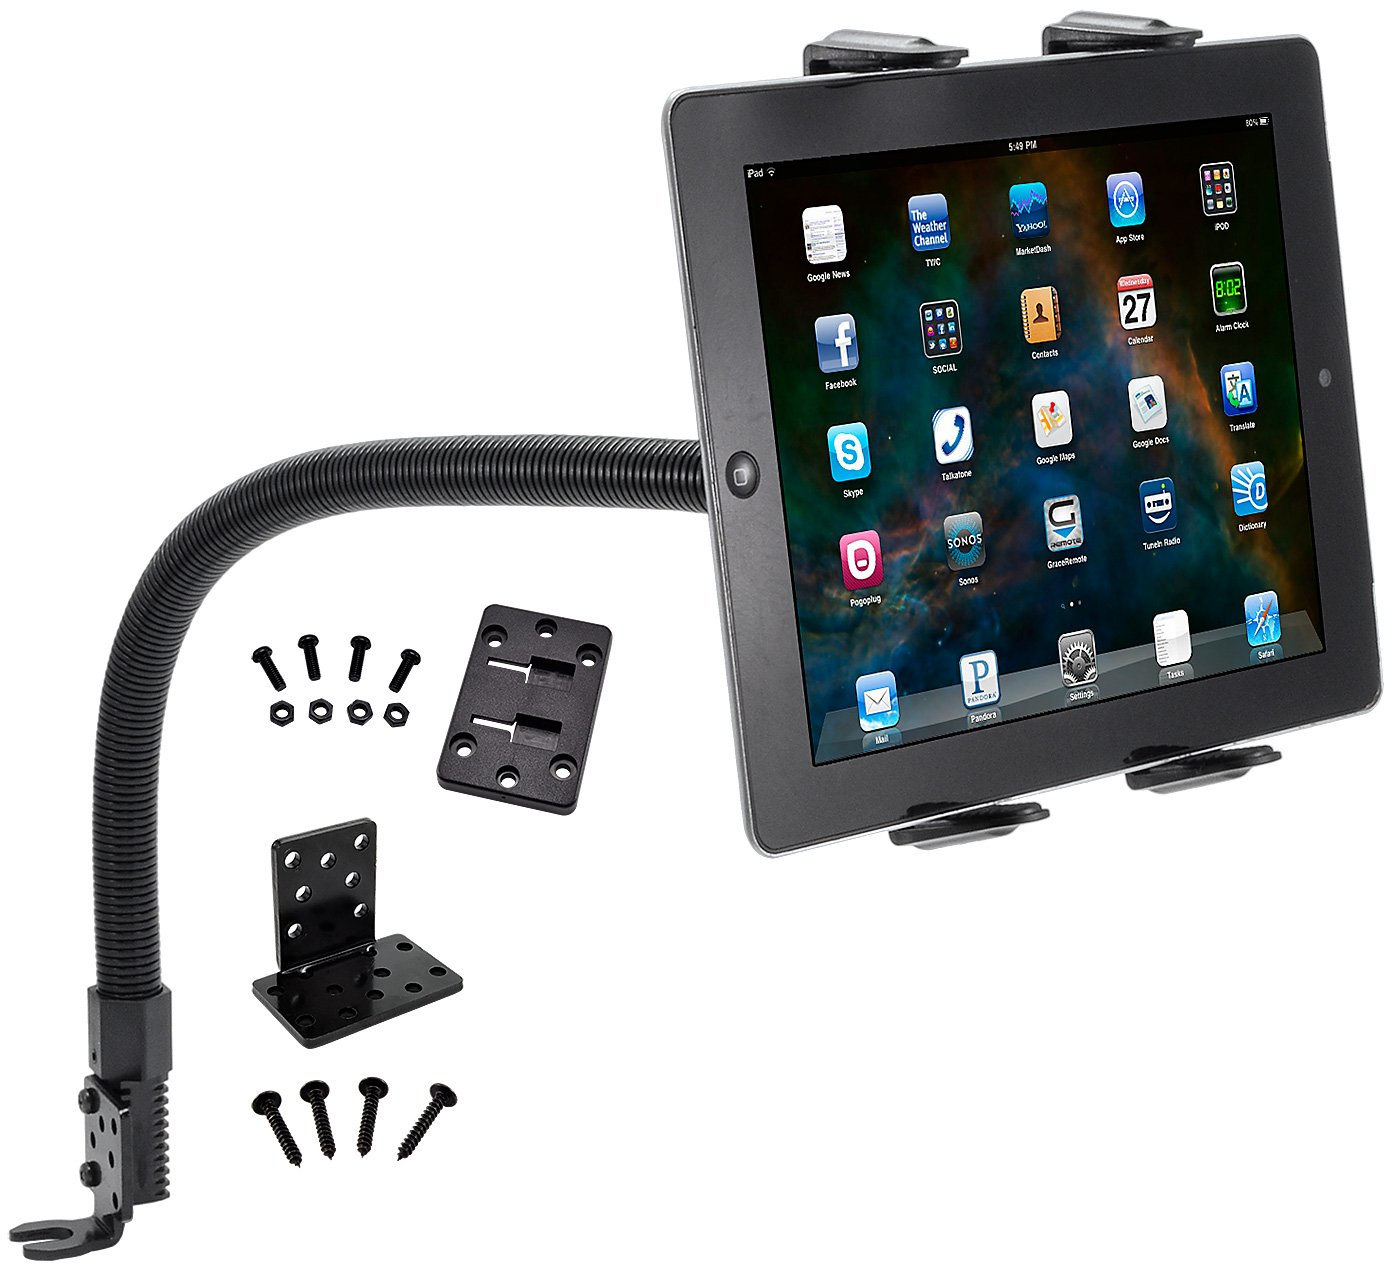 Tablet Mount for Car and Truck - TACKFORM [ELD Mount] Industrial 22 Inch Gooseneck Seat Rail Device Holder for Taxi, Van, Vehicle, Semi. Cradle for all devices including iPad, Galaxy, Surface Pro …